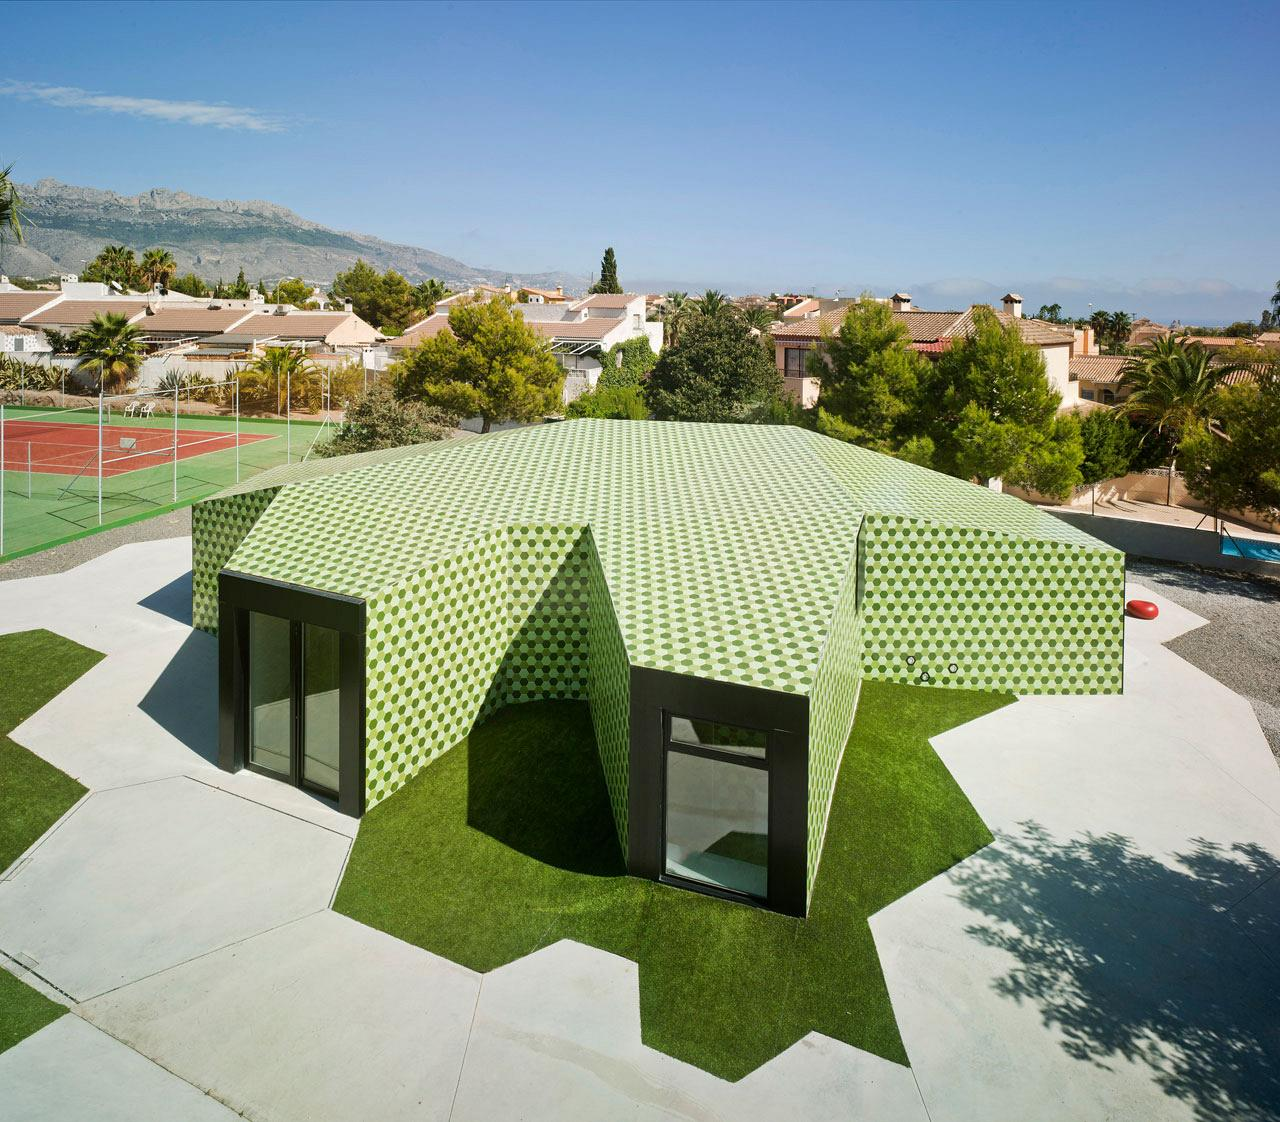 Crystalzoo, awarded the Architizer A+Awards for 'The Administrative Extension in La Nucia' 1